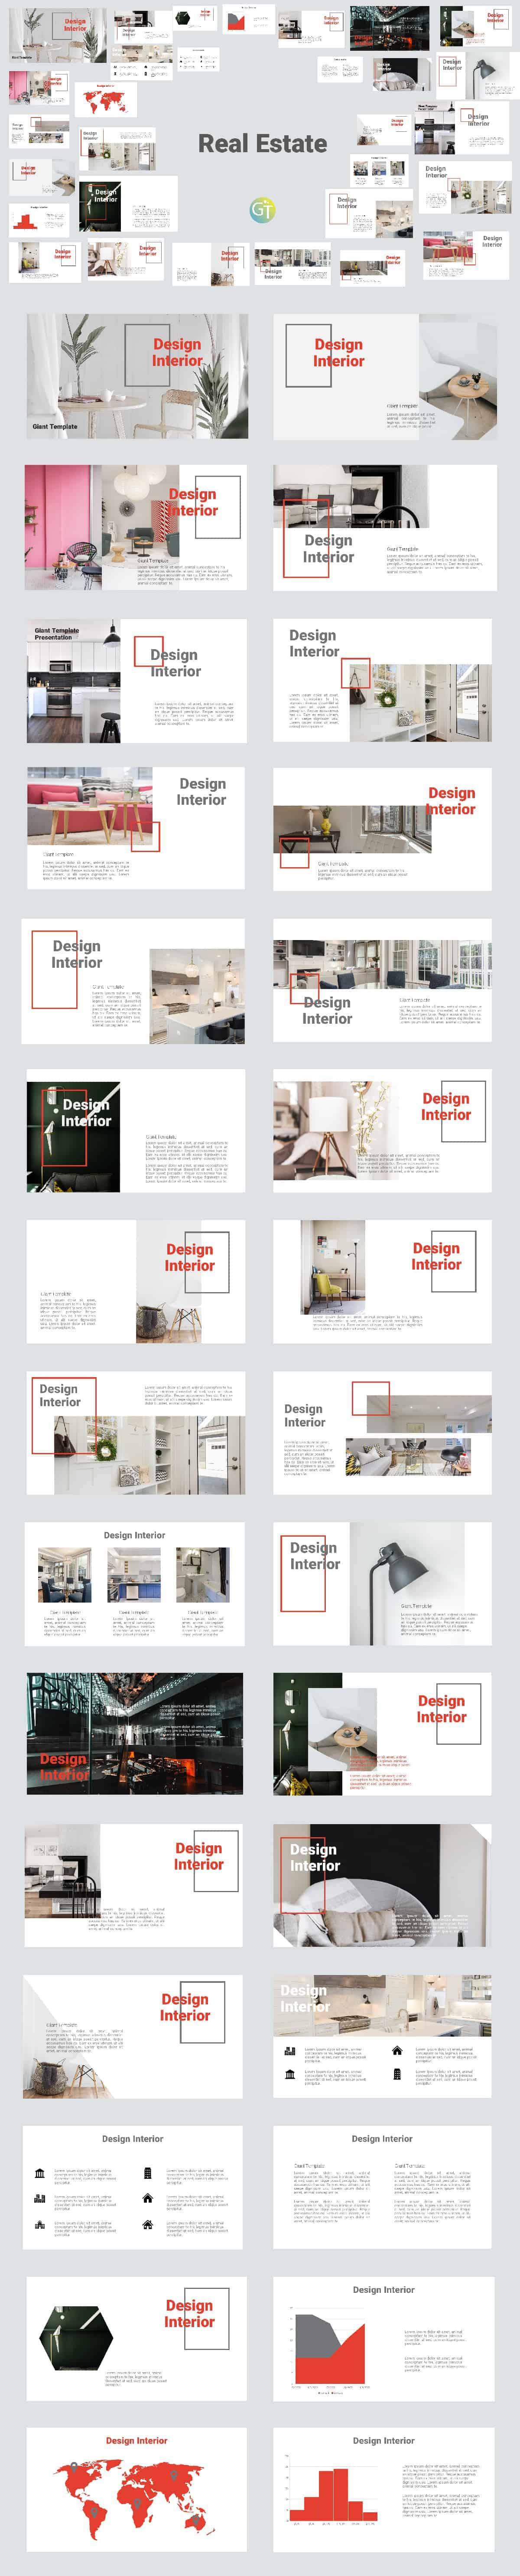 REAL ESTATE MARKETING FREE POWERPOINT TEMPLATES DOWNLOAD FREE